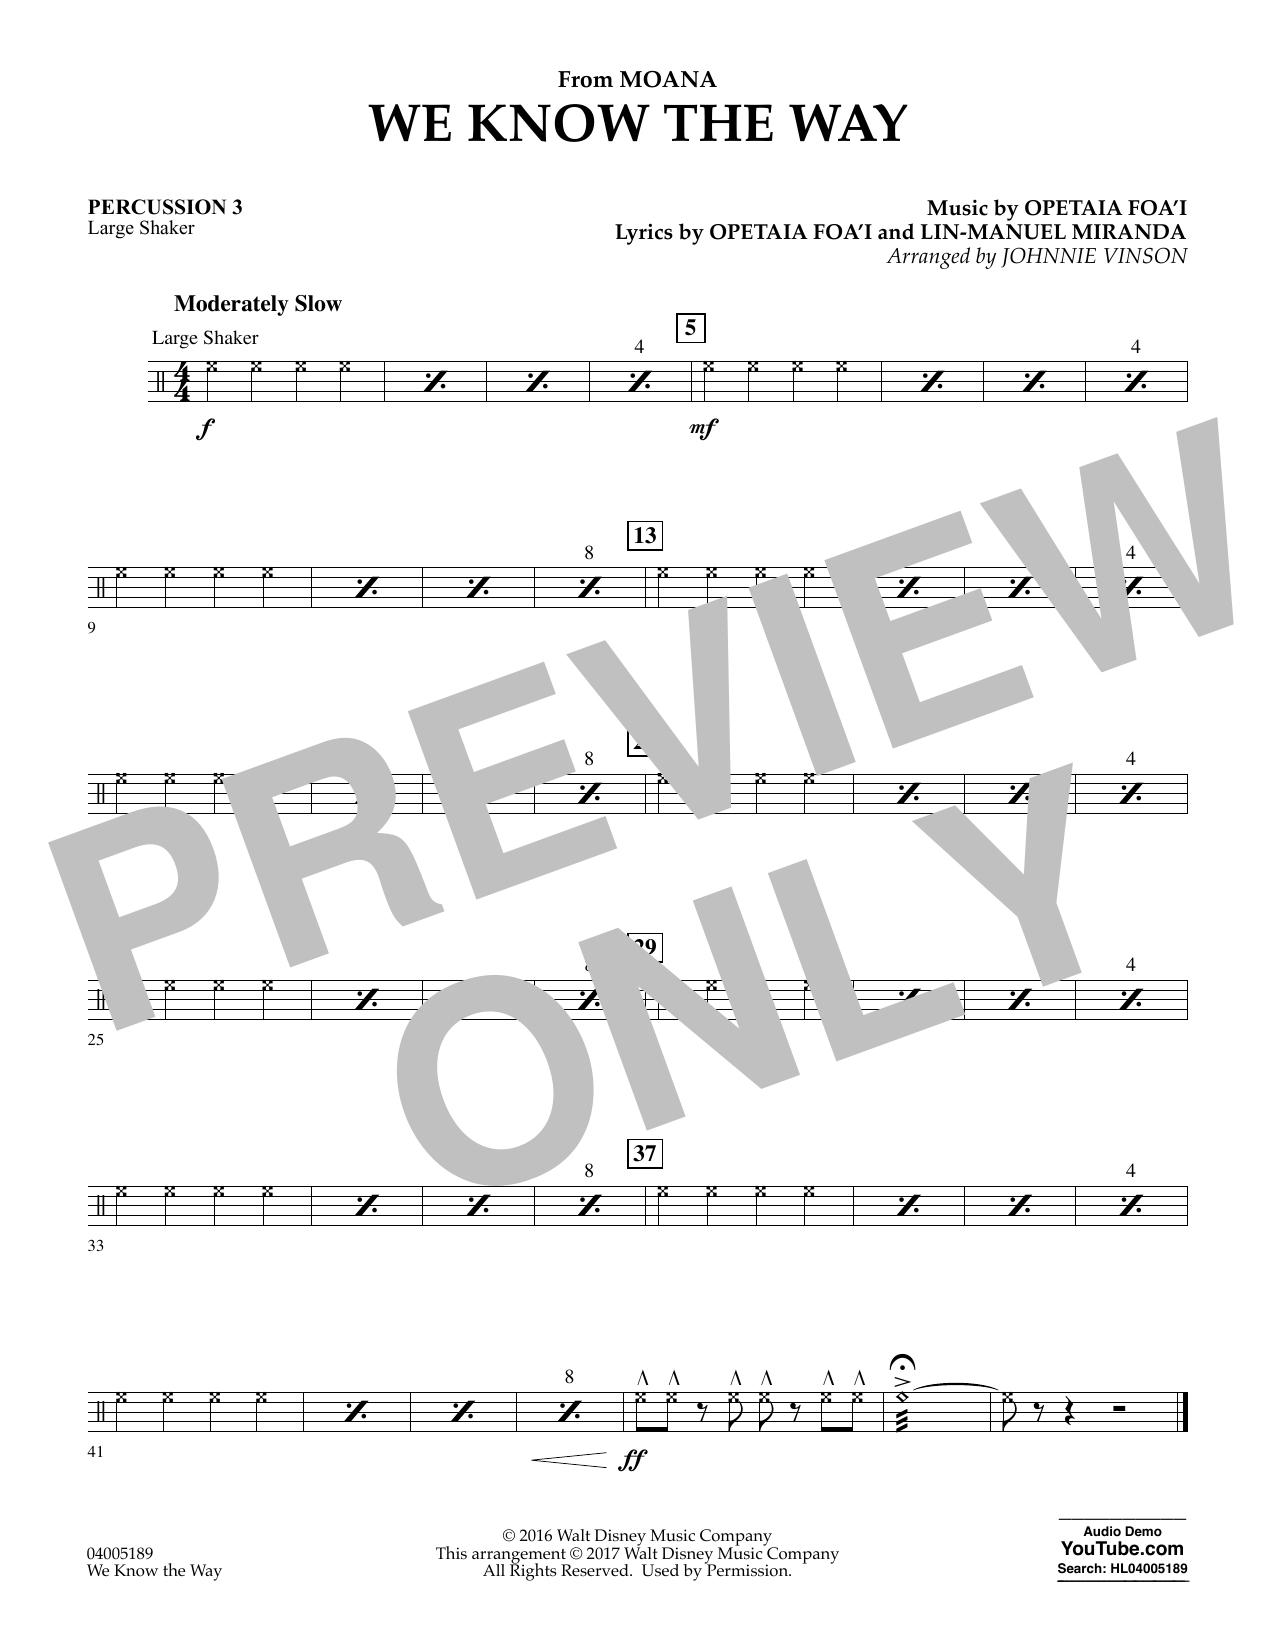 We Know the Way (from Moana) - Percussion 3 (Concert Band)